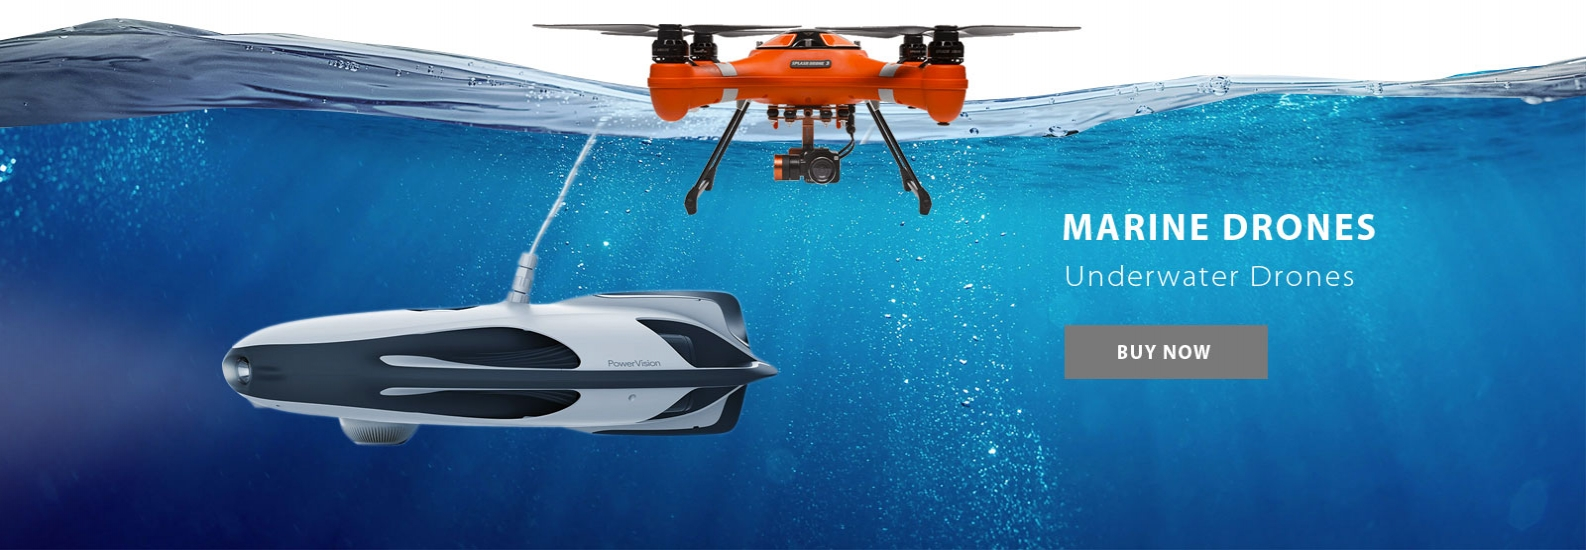 https://www.algadgets.com/underwater-drones-dubai-uae